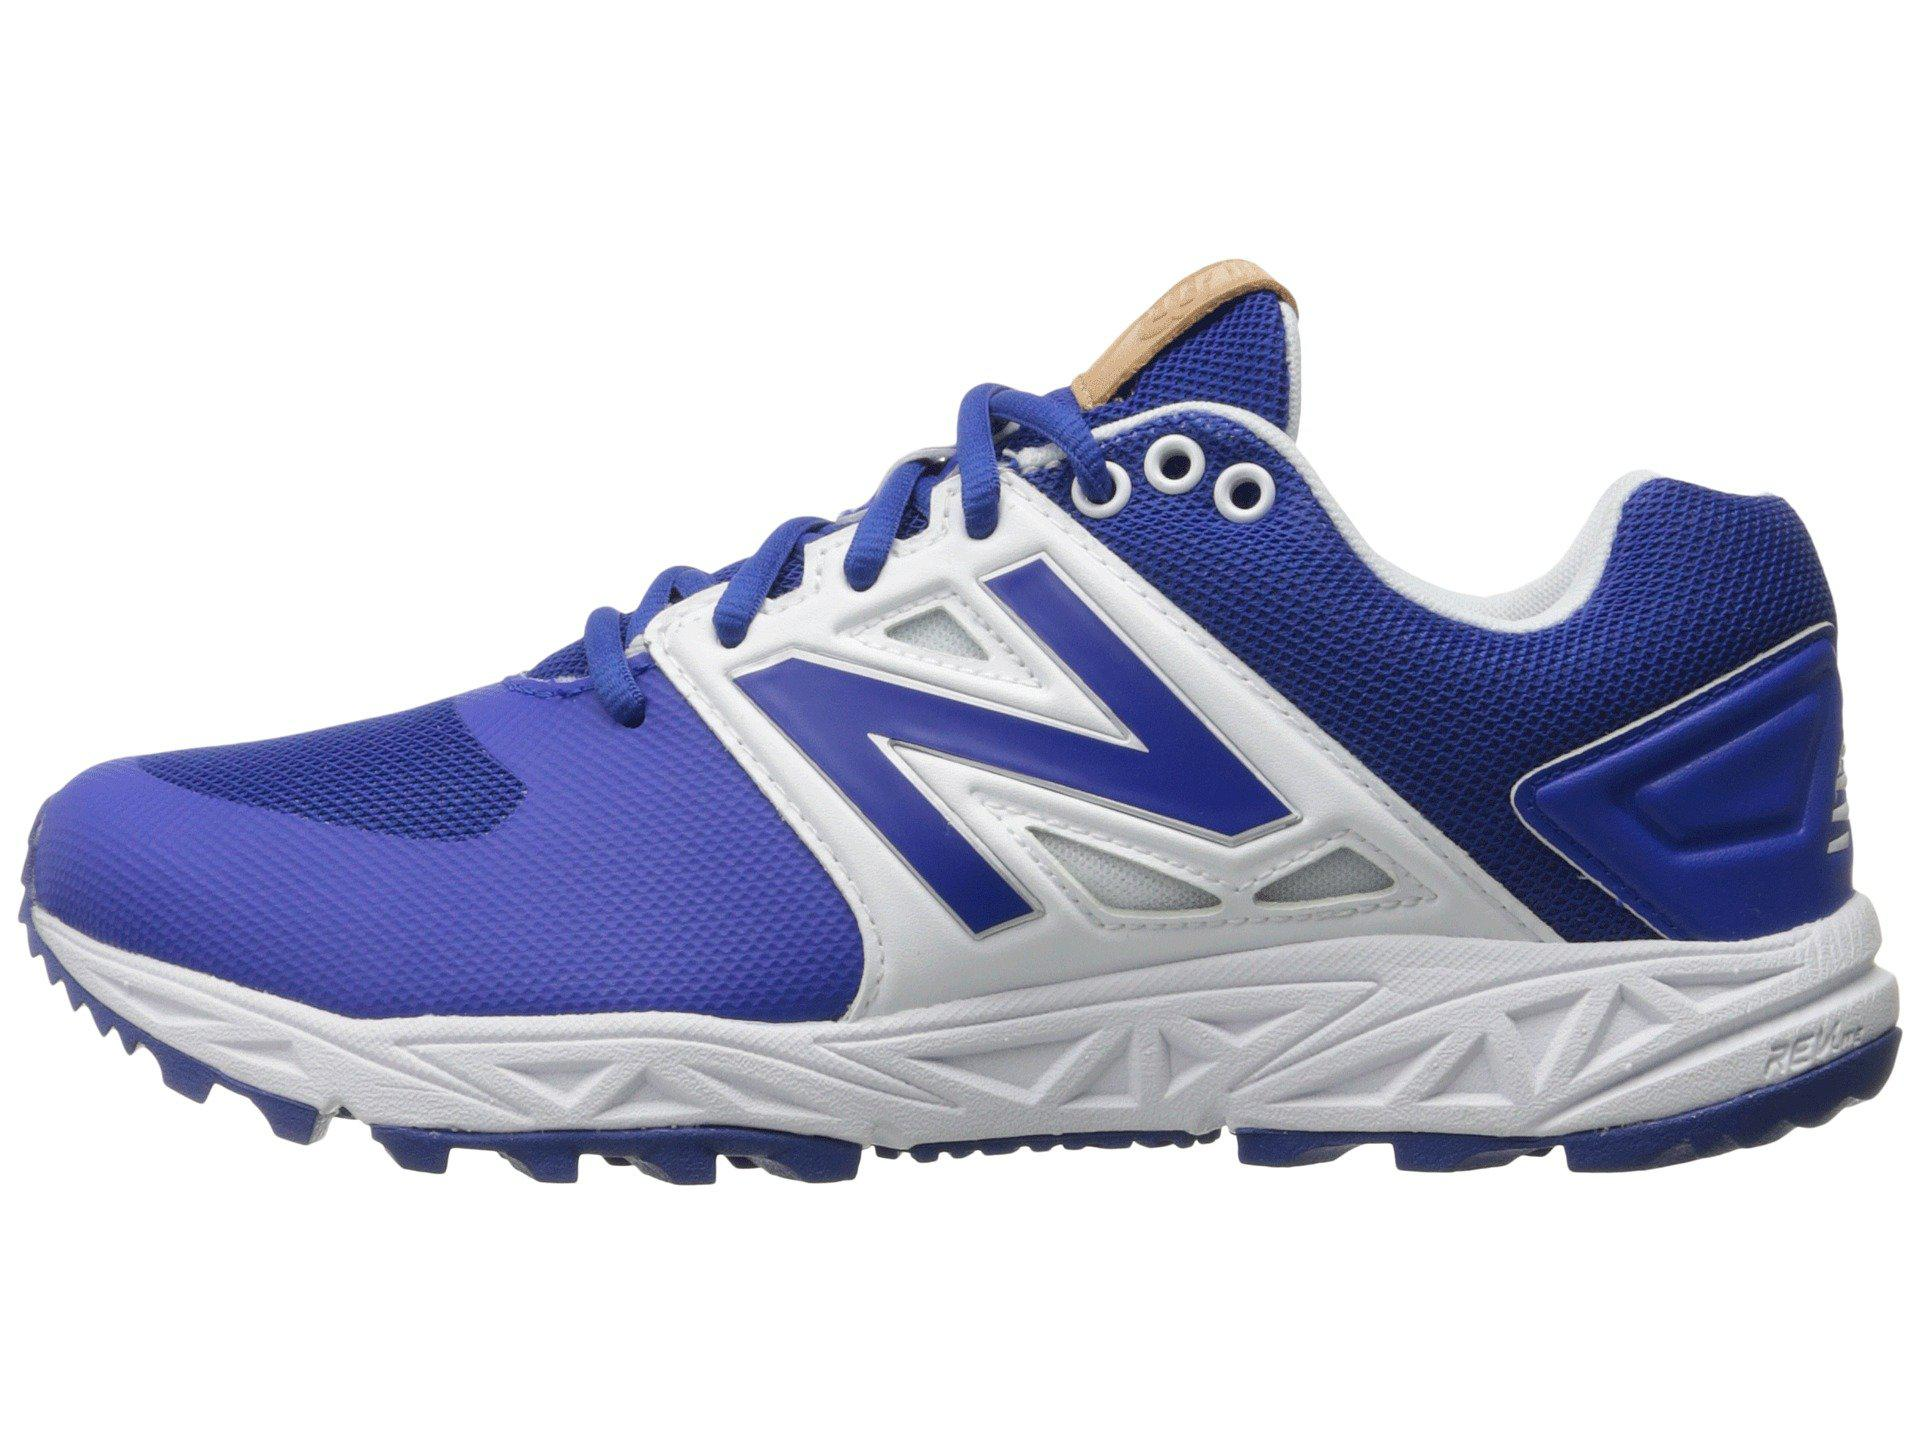 New Balance Synthetic T3000v3 in Blue